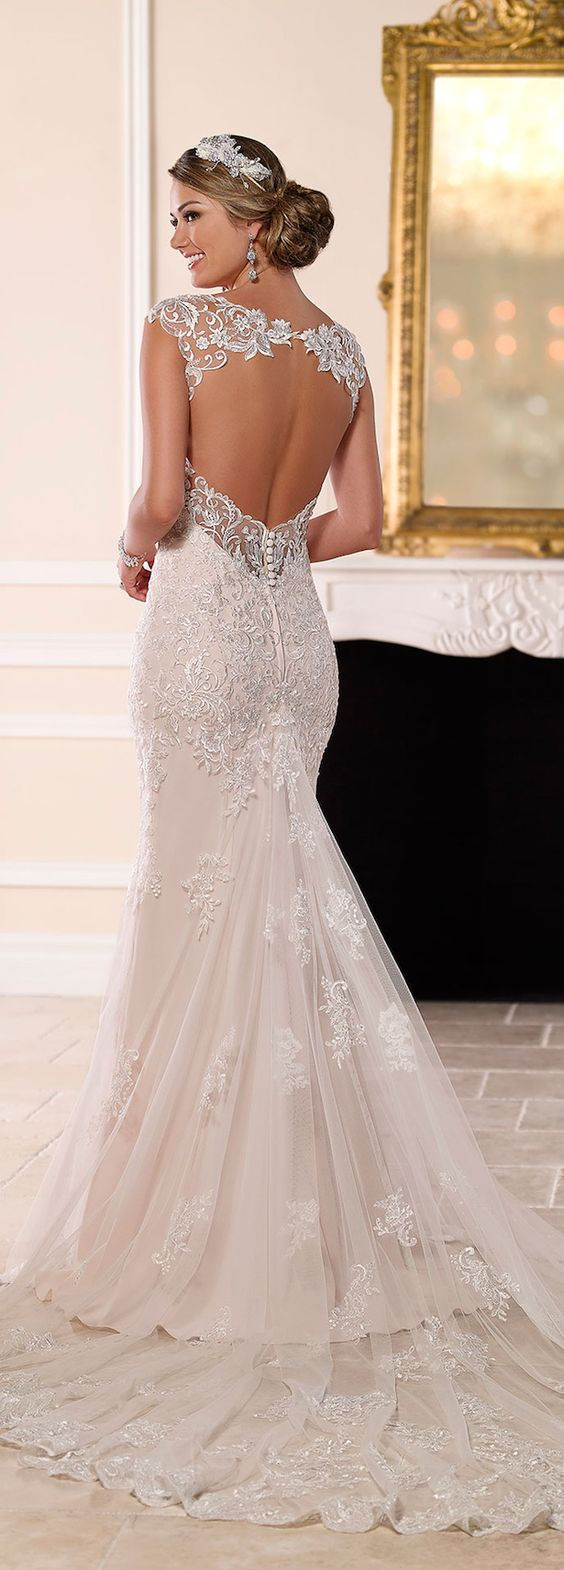 Stella York Spring 2016 Bridal Collection #WeddingDress